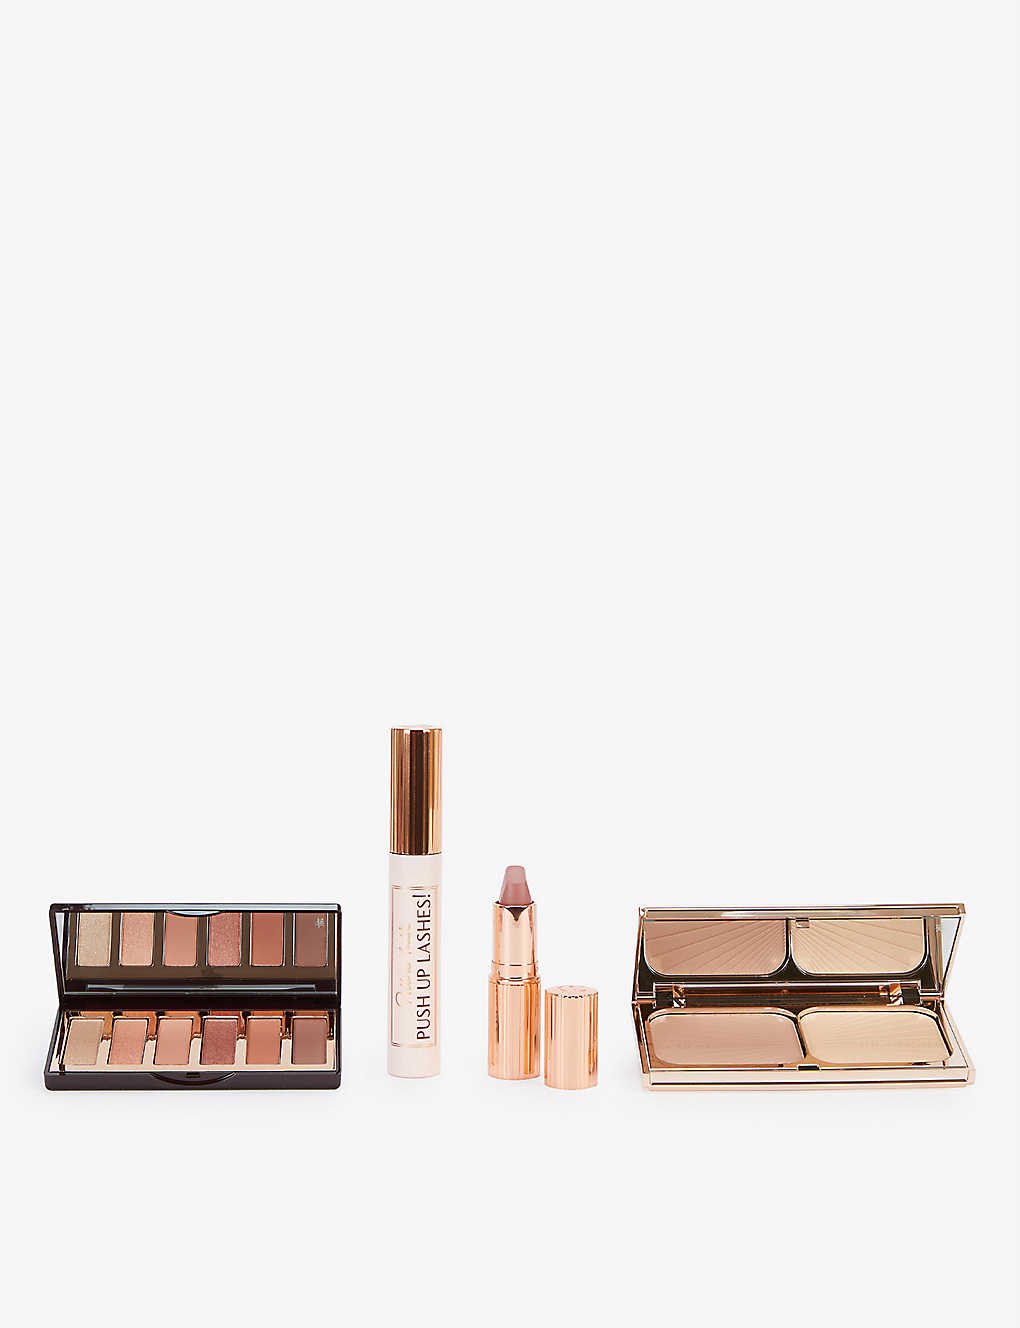 Selfridges x Charlotte Tilbury Charlotte's Magic Icons Gift Set